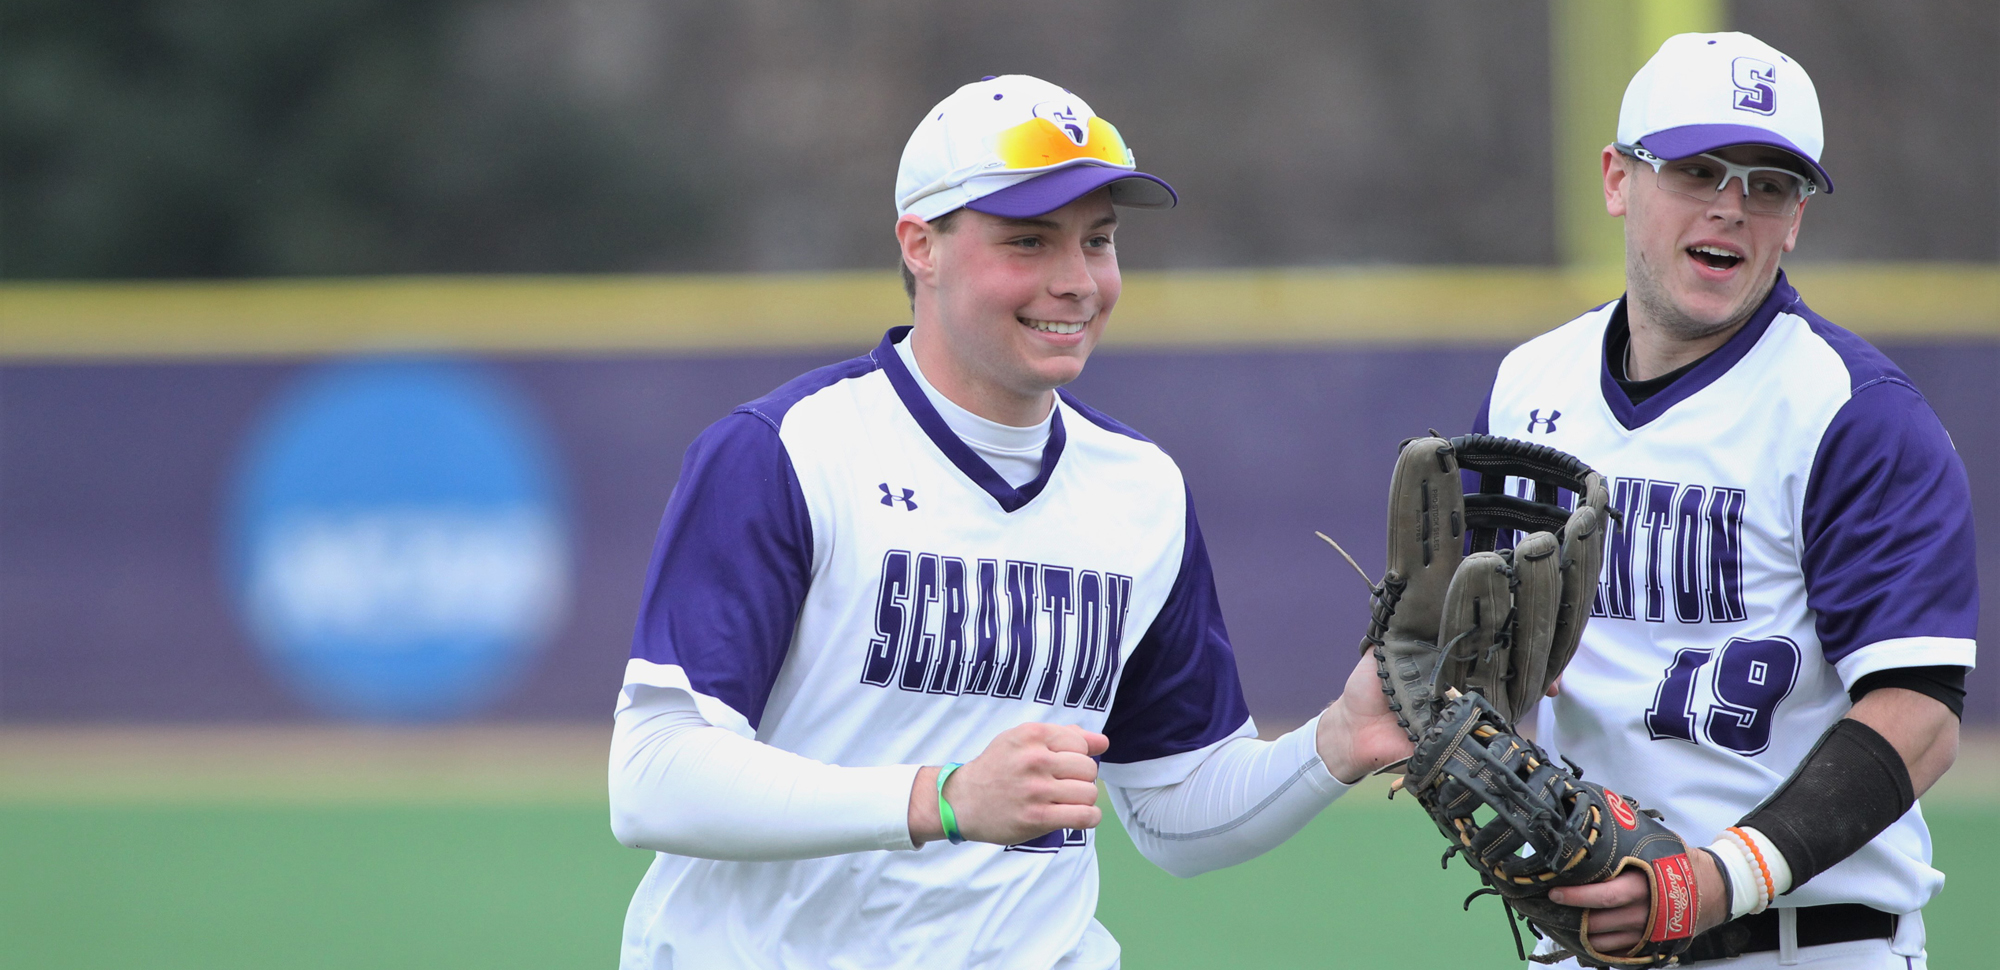 Sophomore Connor Harding has been named The University of Scranton Athlete of the Week. © Photo by Timothy R. Dougherty / doubleeaglephotography.com